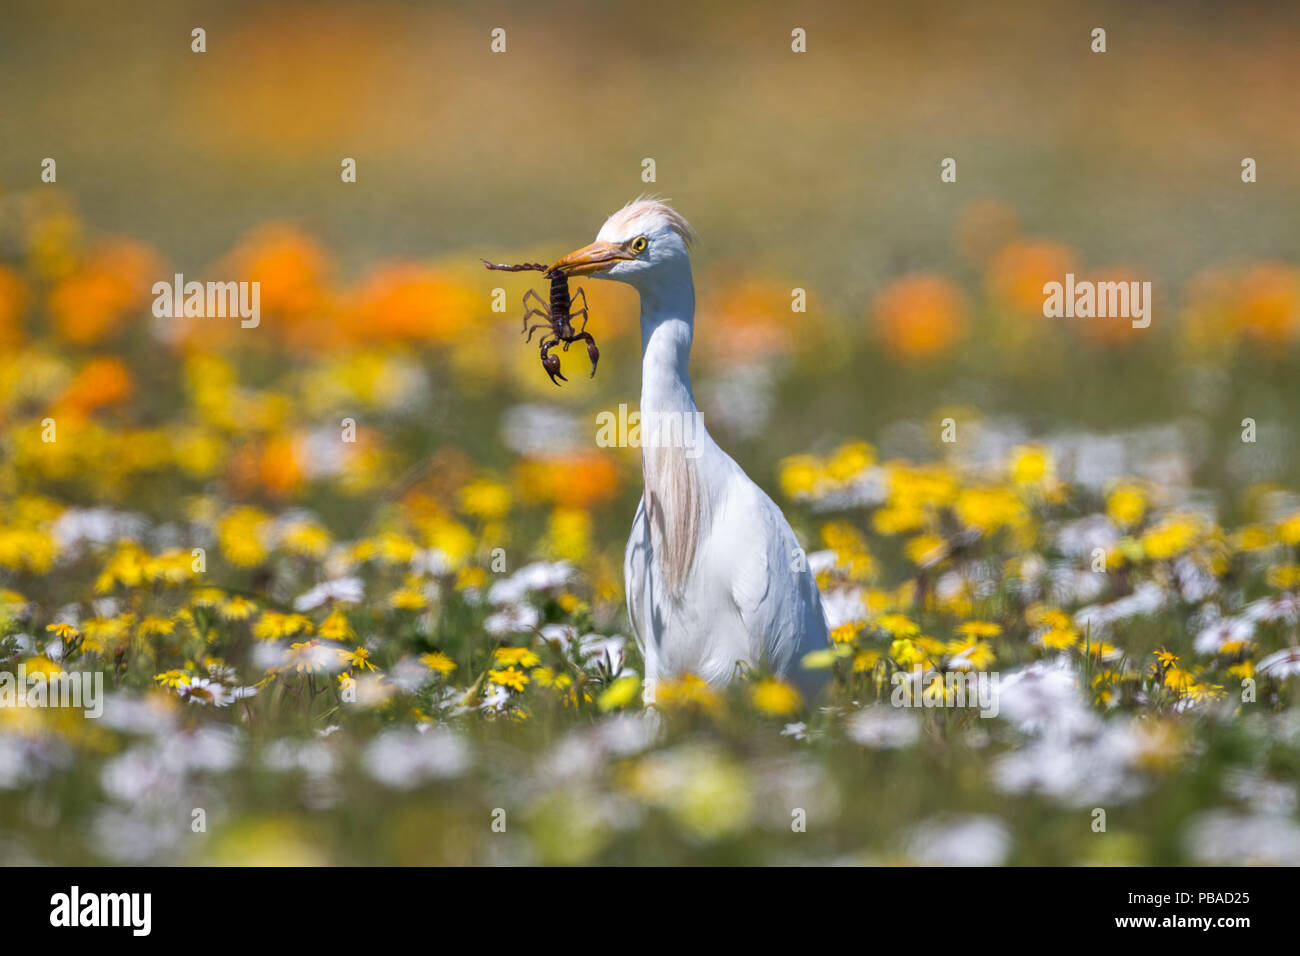 Western cattle egret (Bubulcus ibis) with scorpion prey, West Coast National Park, South Africa - Stock Image